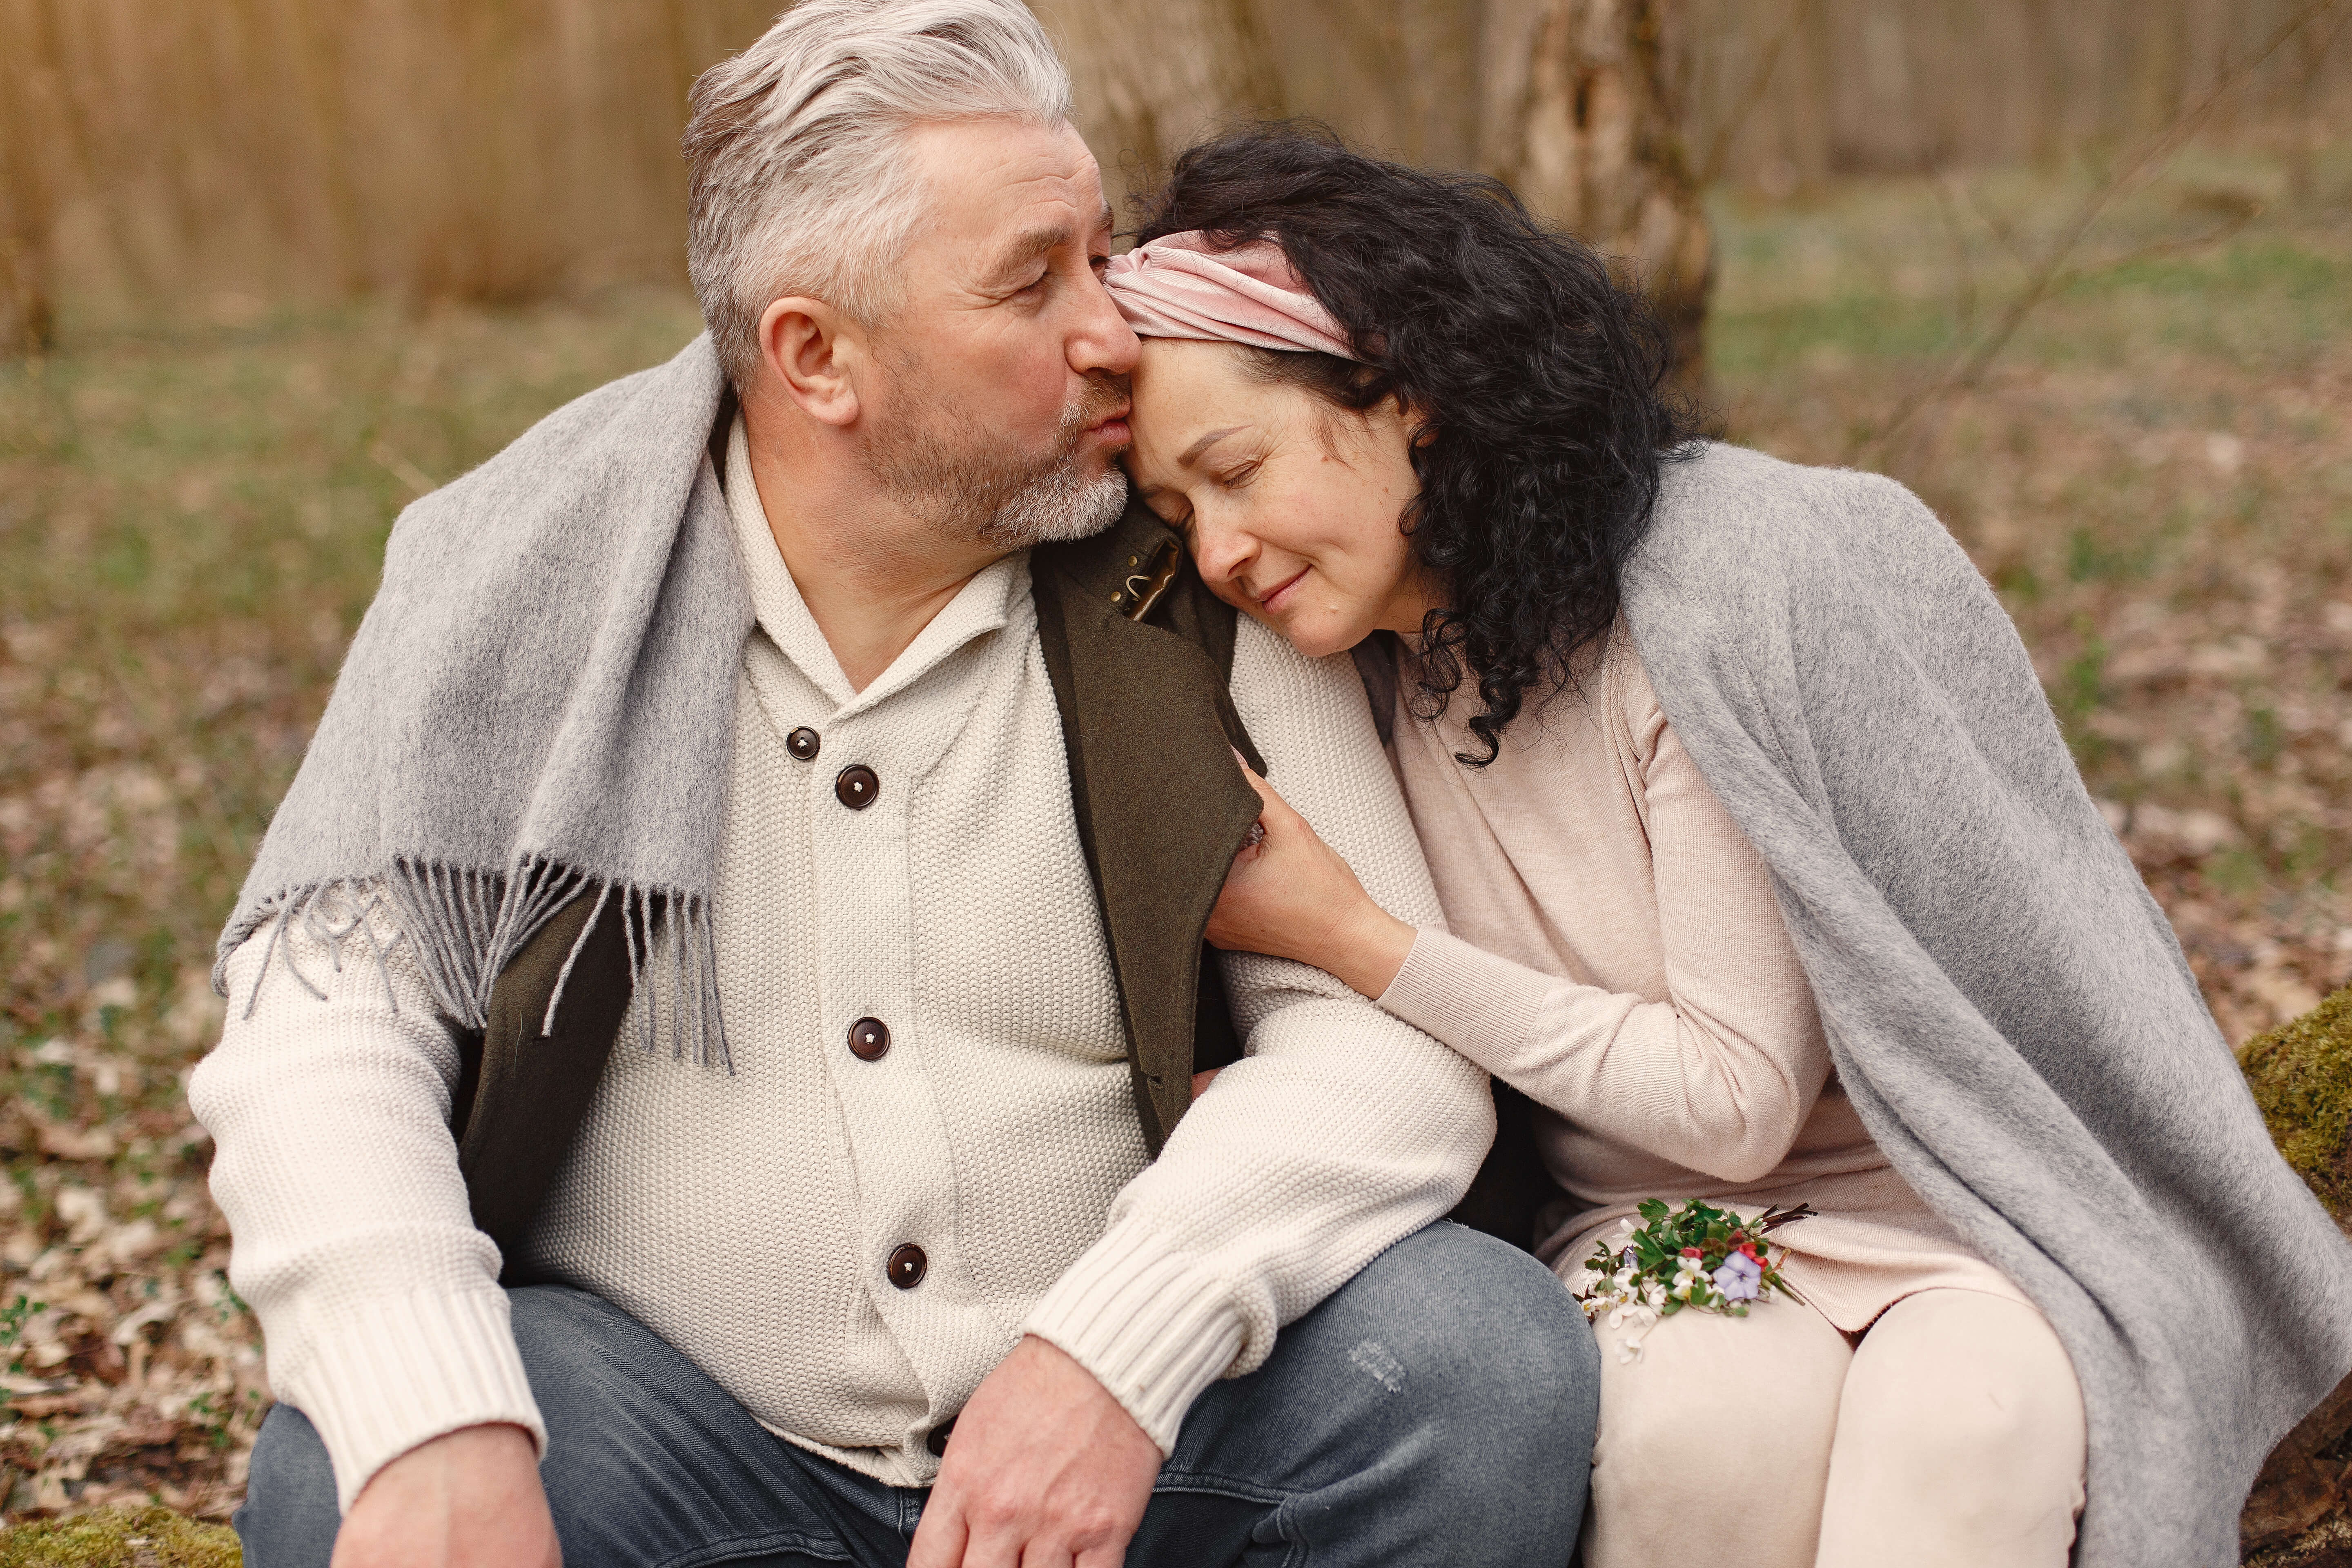 Finding retirement certainty in an uncertain world - Informed Financial Planning